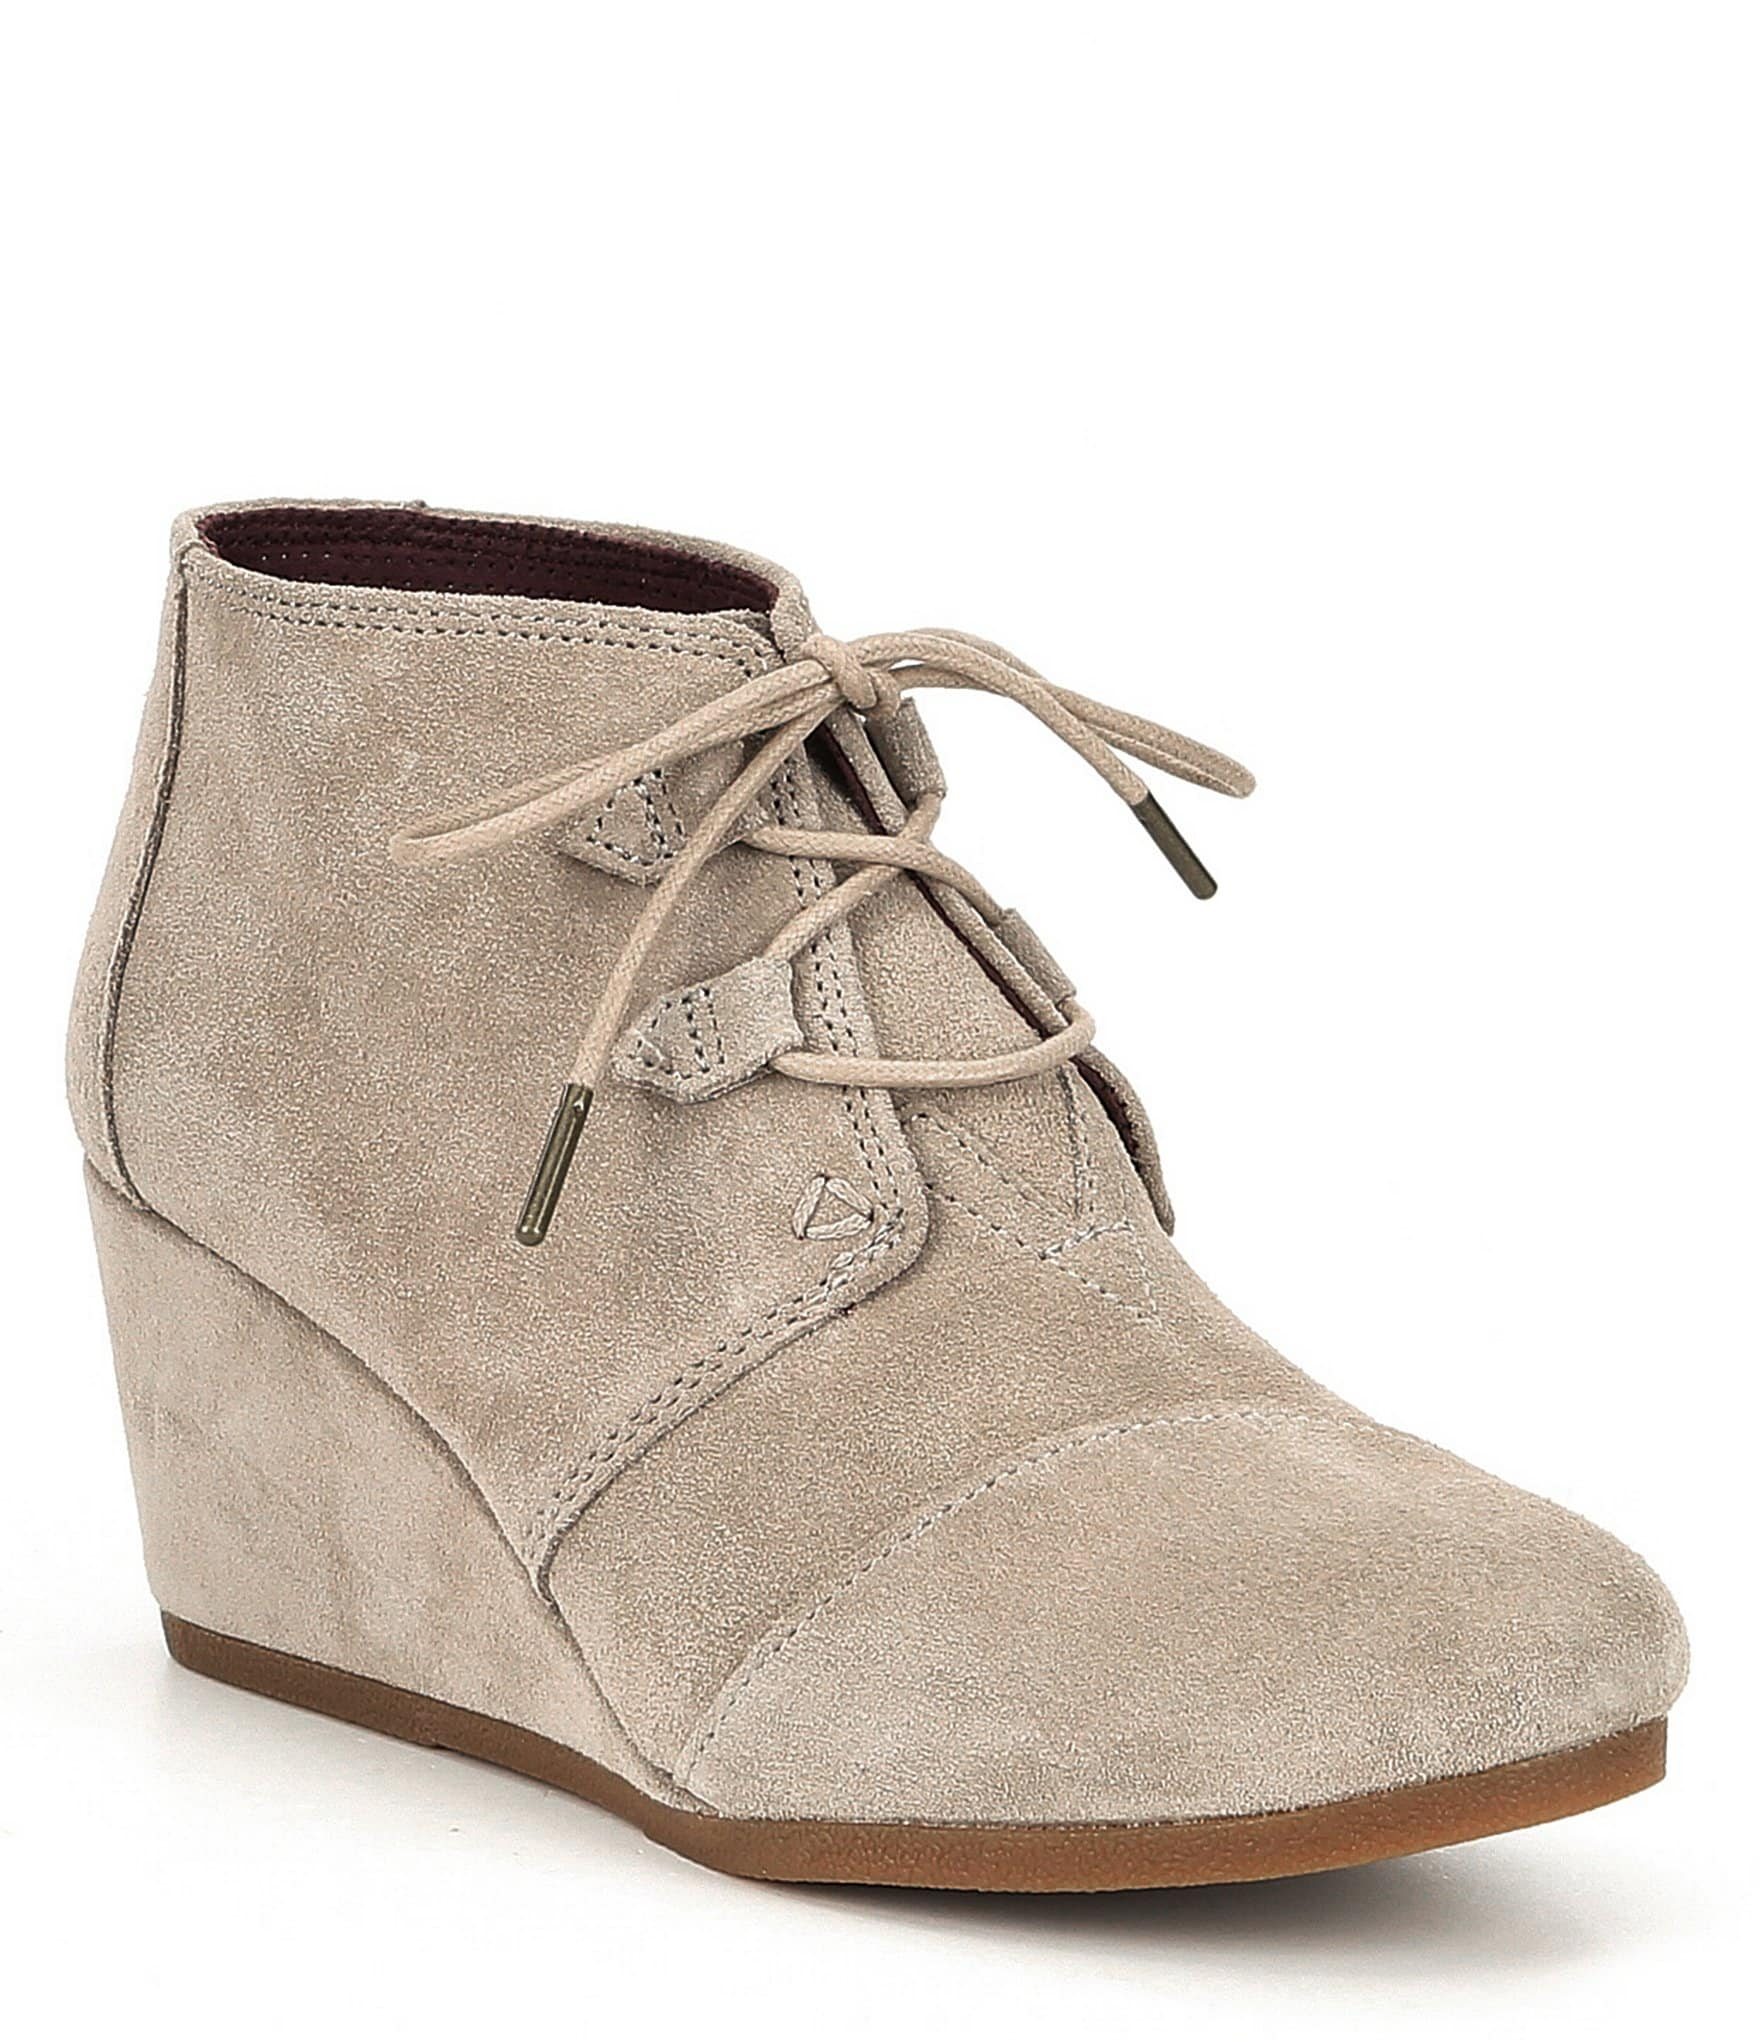 b42d1e009943 wedge booties  Shoes for Women